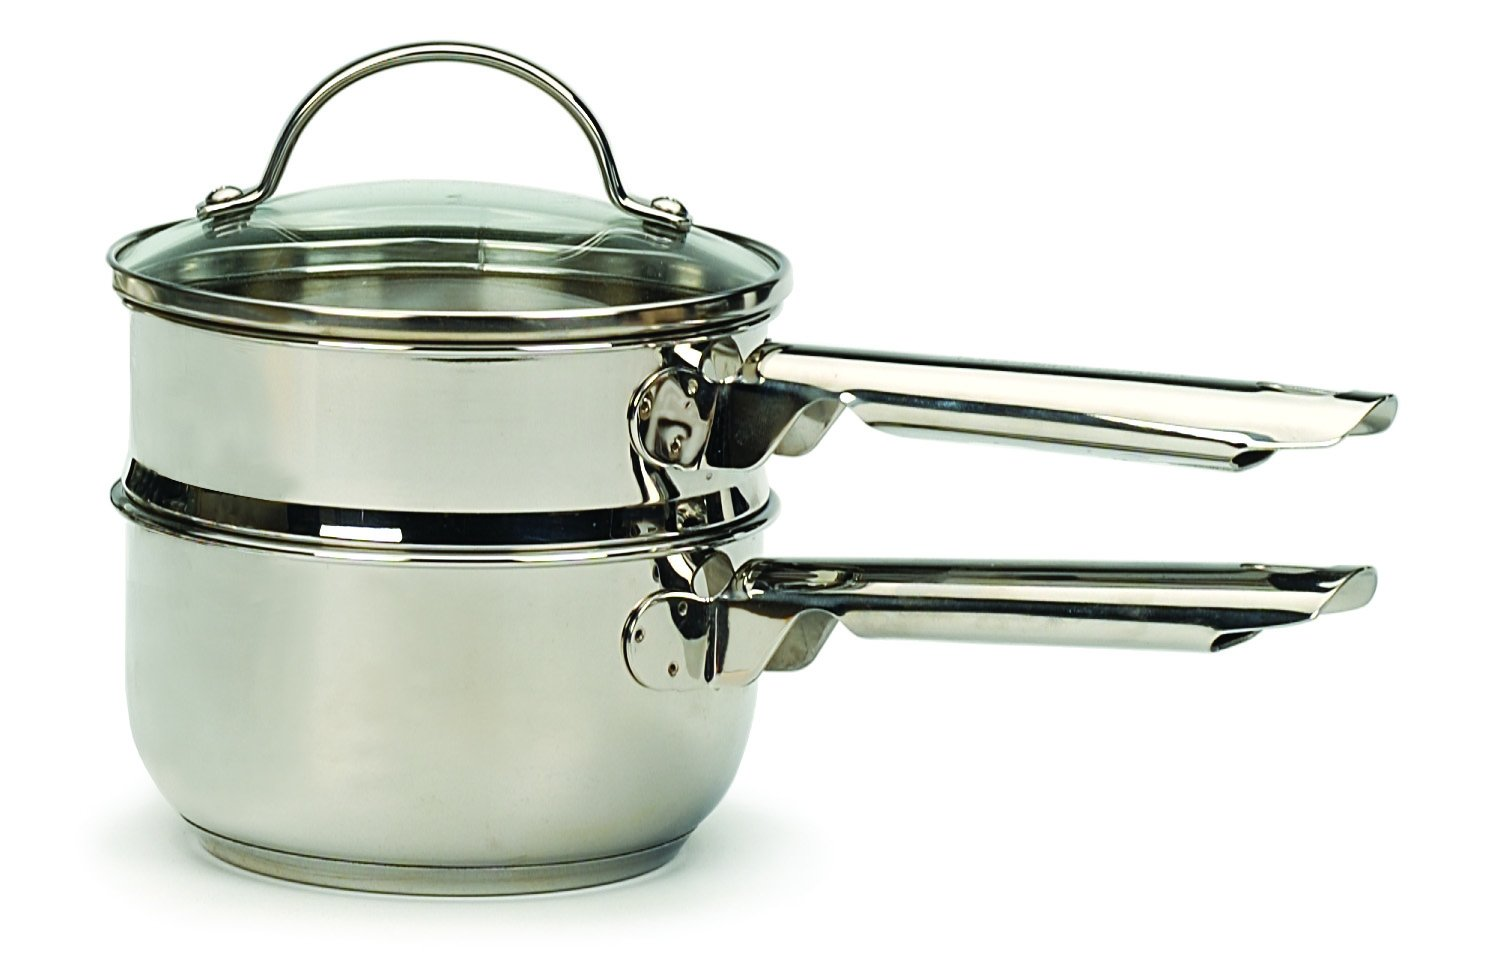 RSVP Endurance Stainless Steel Induction Double Boiler, 1 Quart